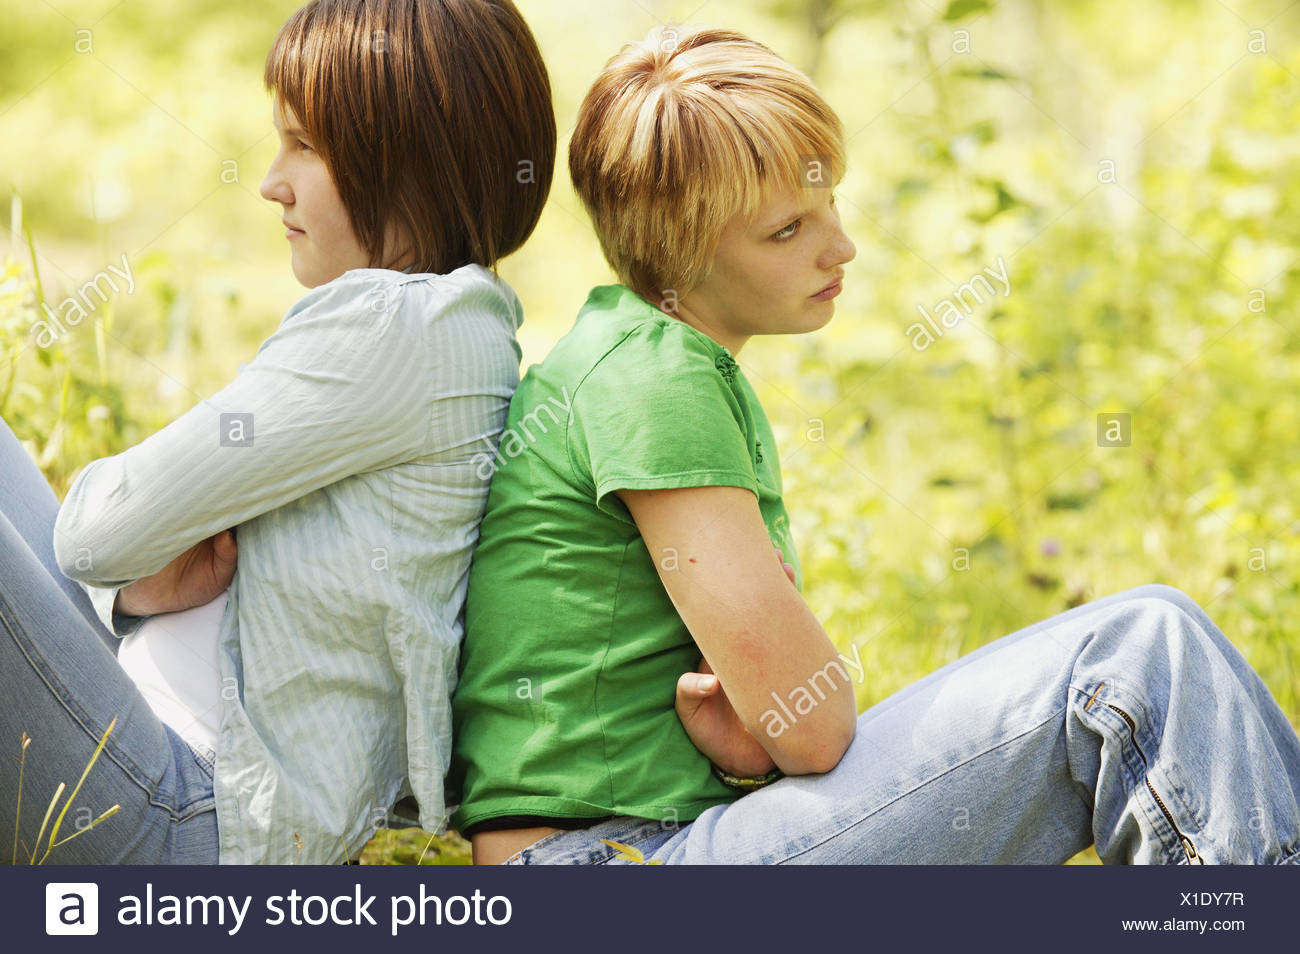 Two girls having a disagreement - Stock Image